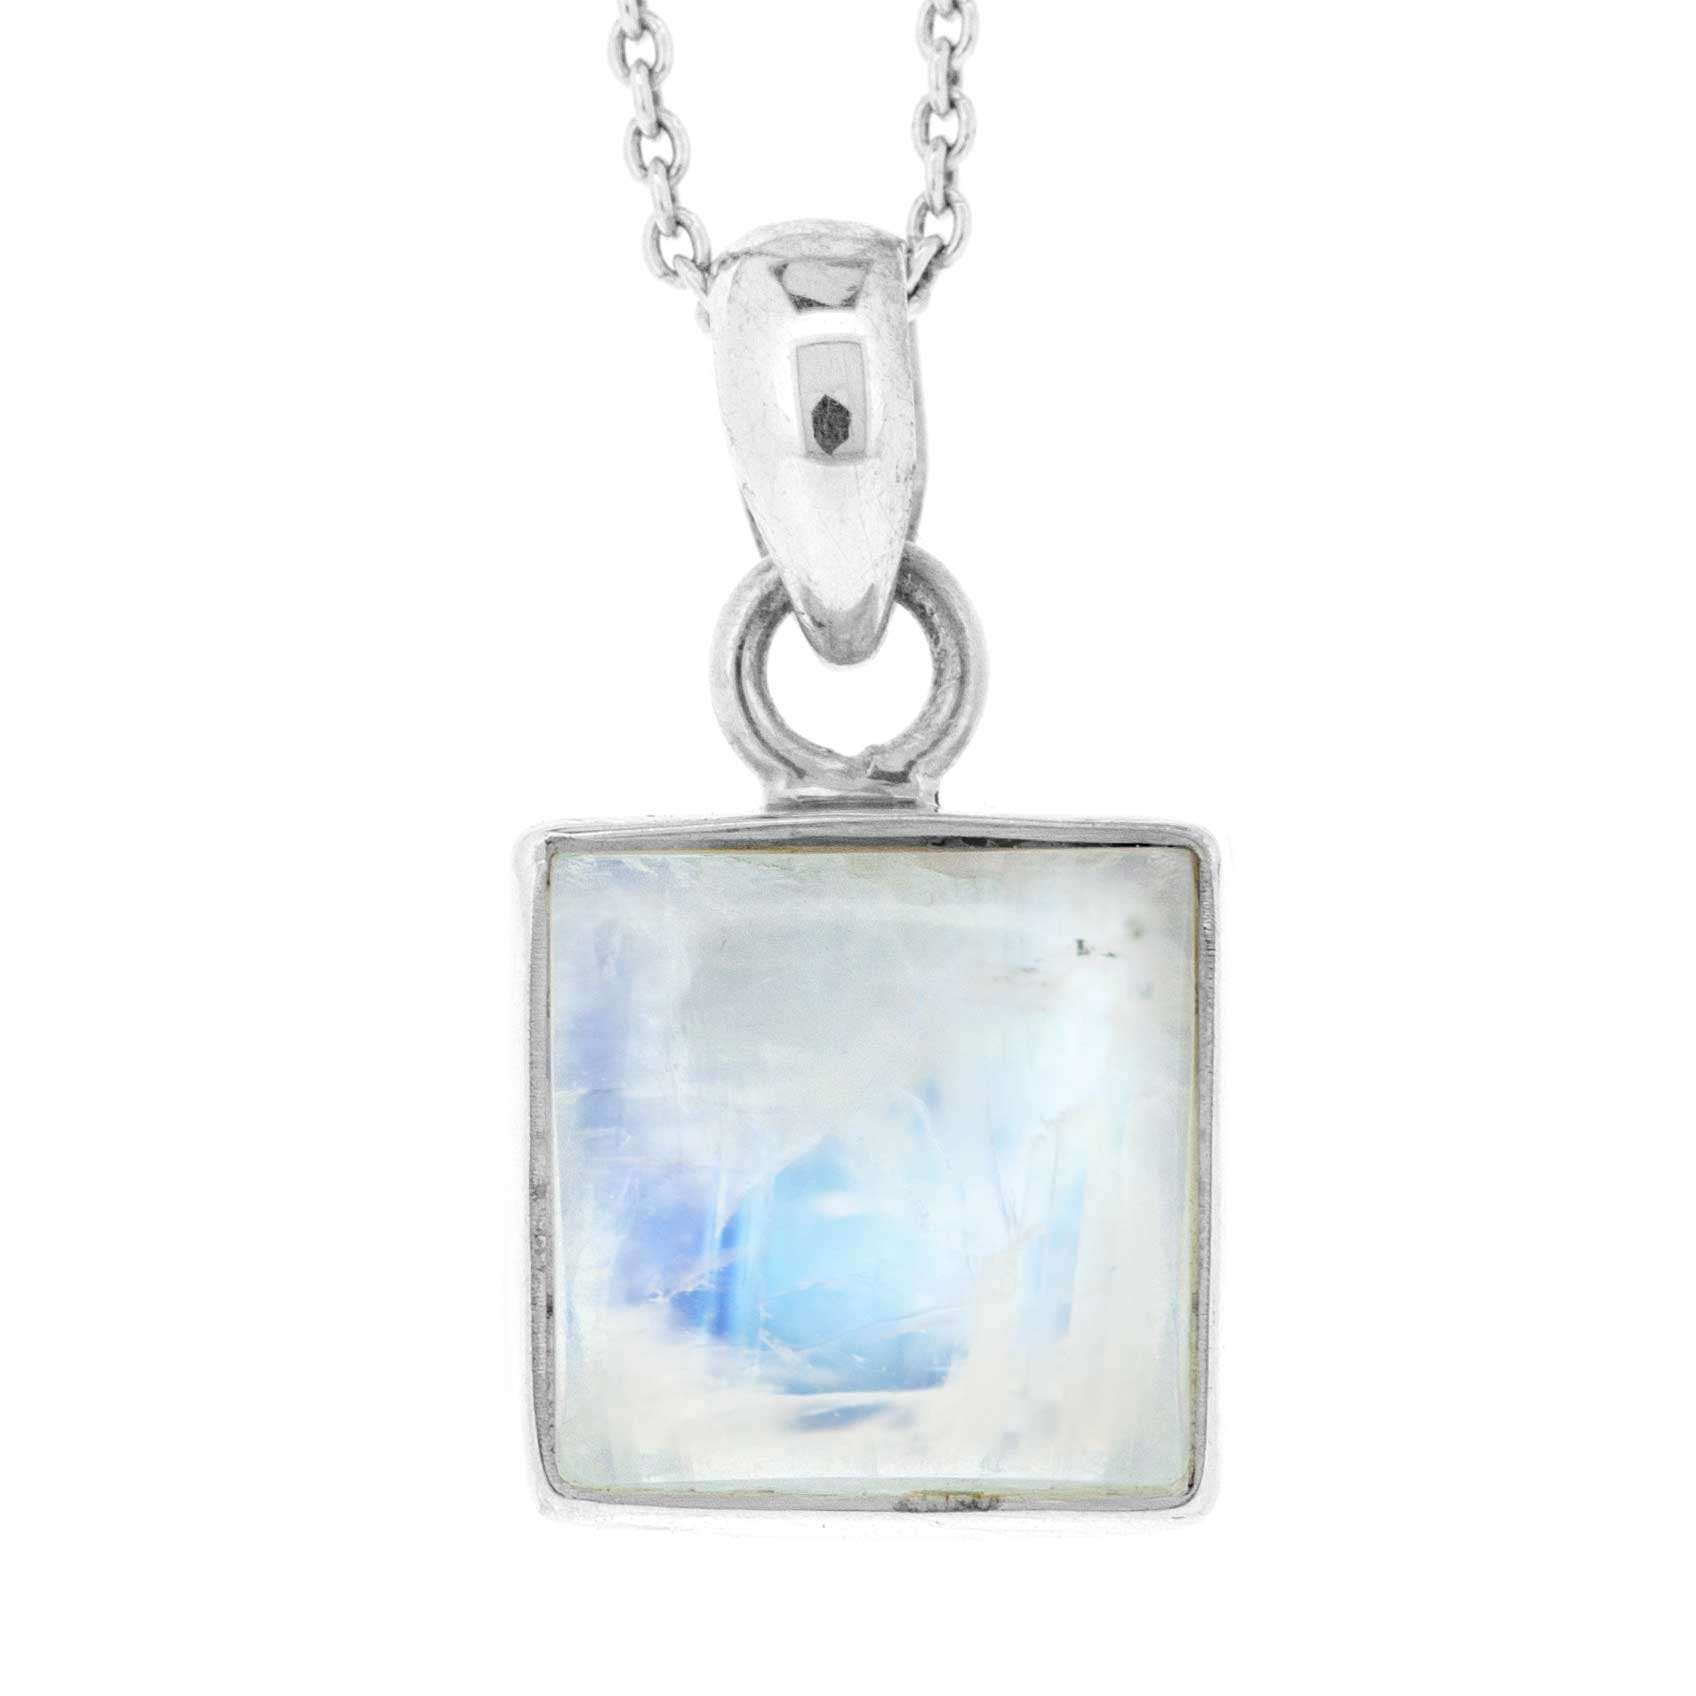 Small Square Shaped Pendant